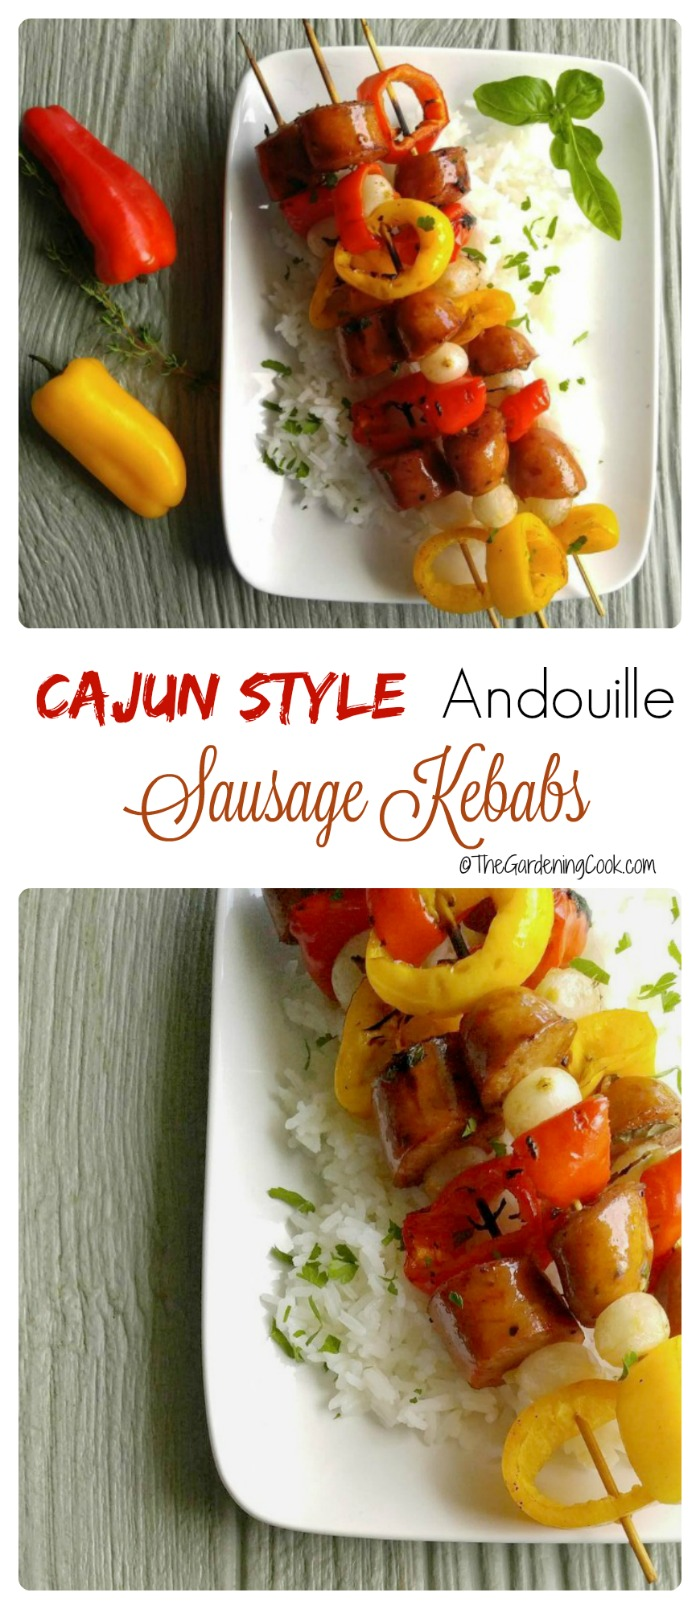 Therse Cajun style Andouille sausage kebabs have a slightly spicy taste that pairs beautifully with a Merlot wine. thegardeningcook.com #SavorYourSummerRecipes #ad